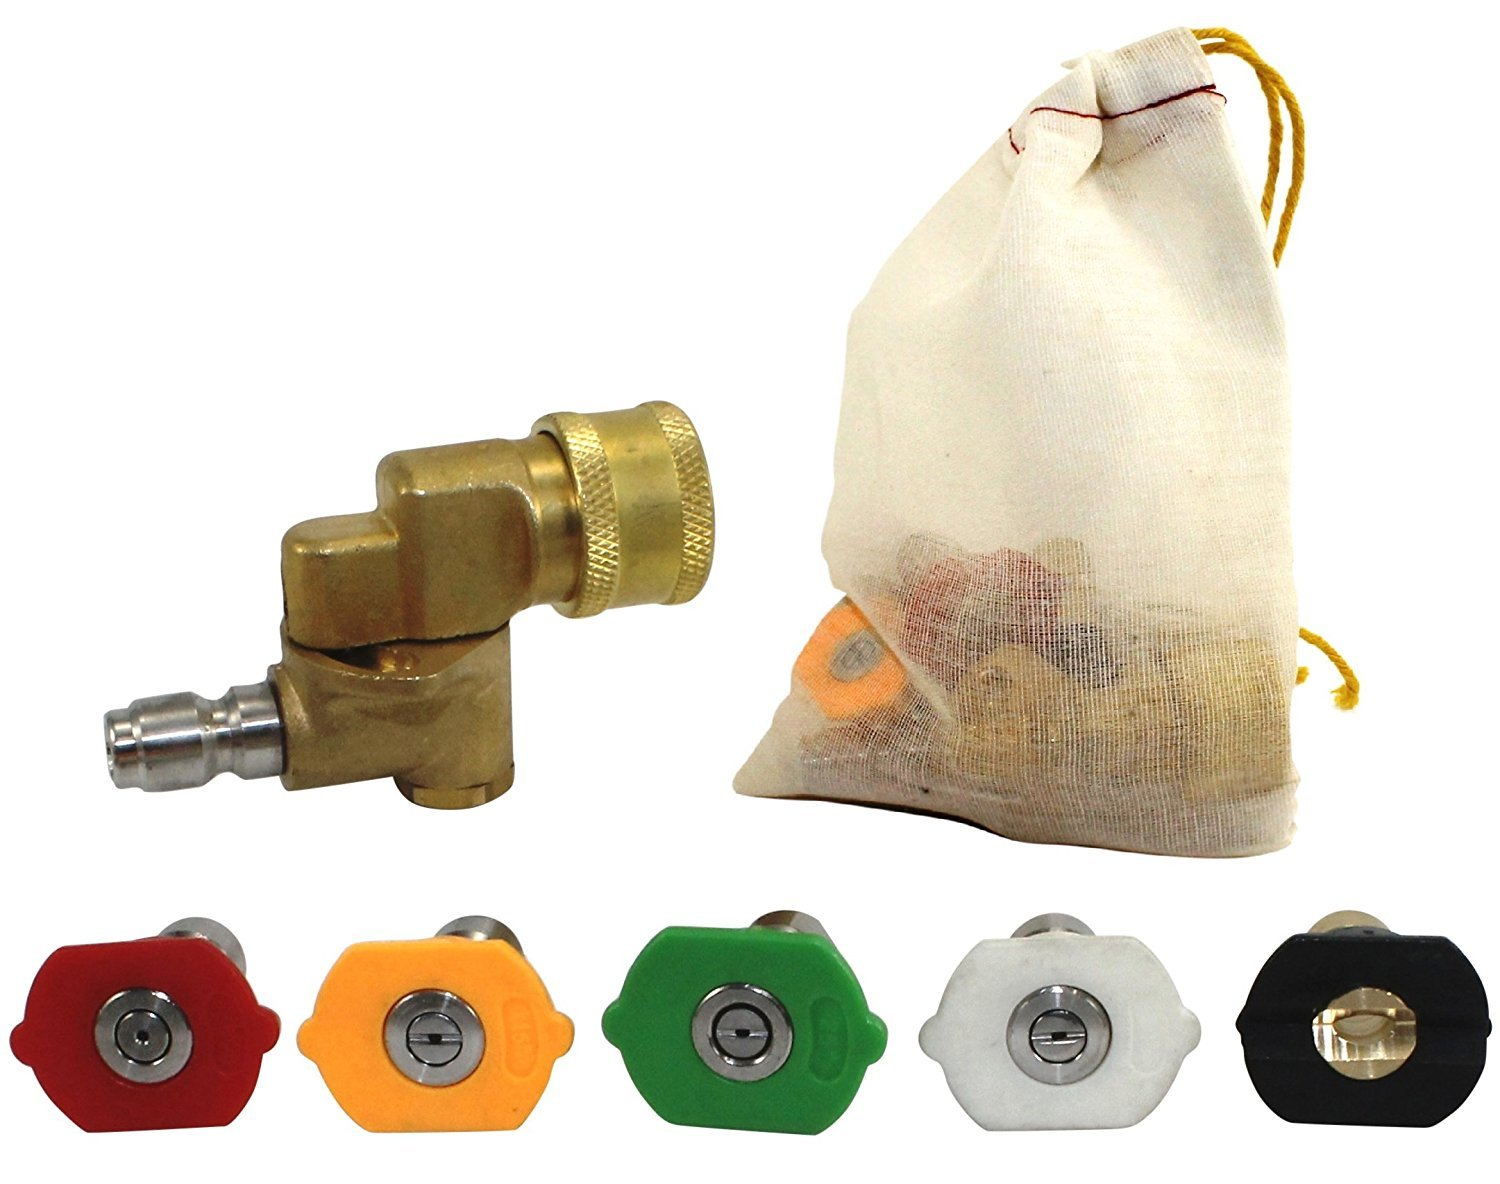 Pressure Washer Nozzle Tips and Quick Connect Pivot Coupler - ¼ in, 3.0 GPM, 1500-3750 PSI, 0, 15, 25, 45, 60 - For Most Power Washer Spray Wands and Accessories - Free Industrial Cotton Bag by Hurleco